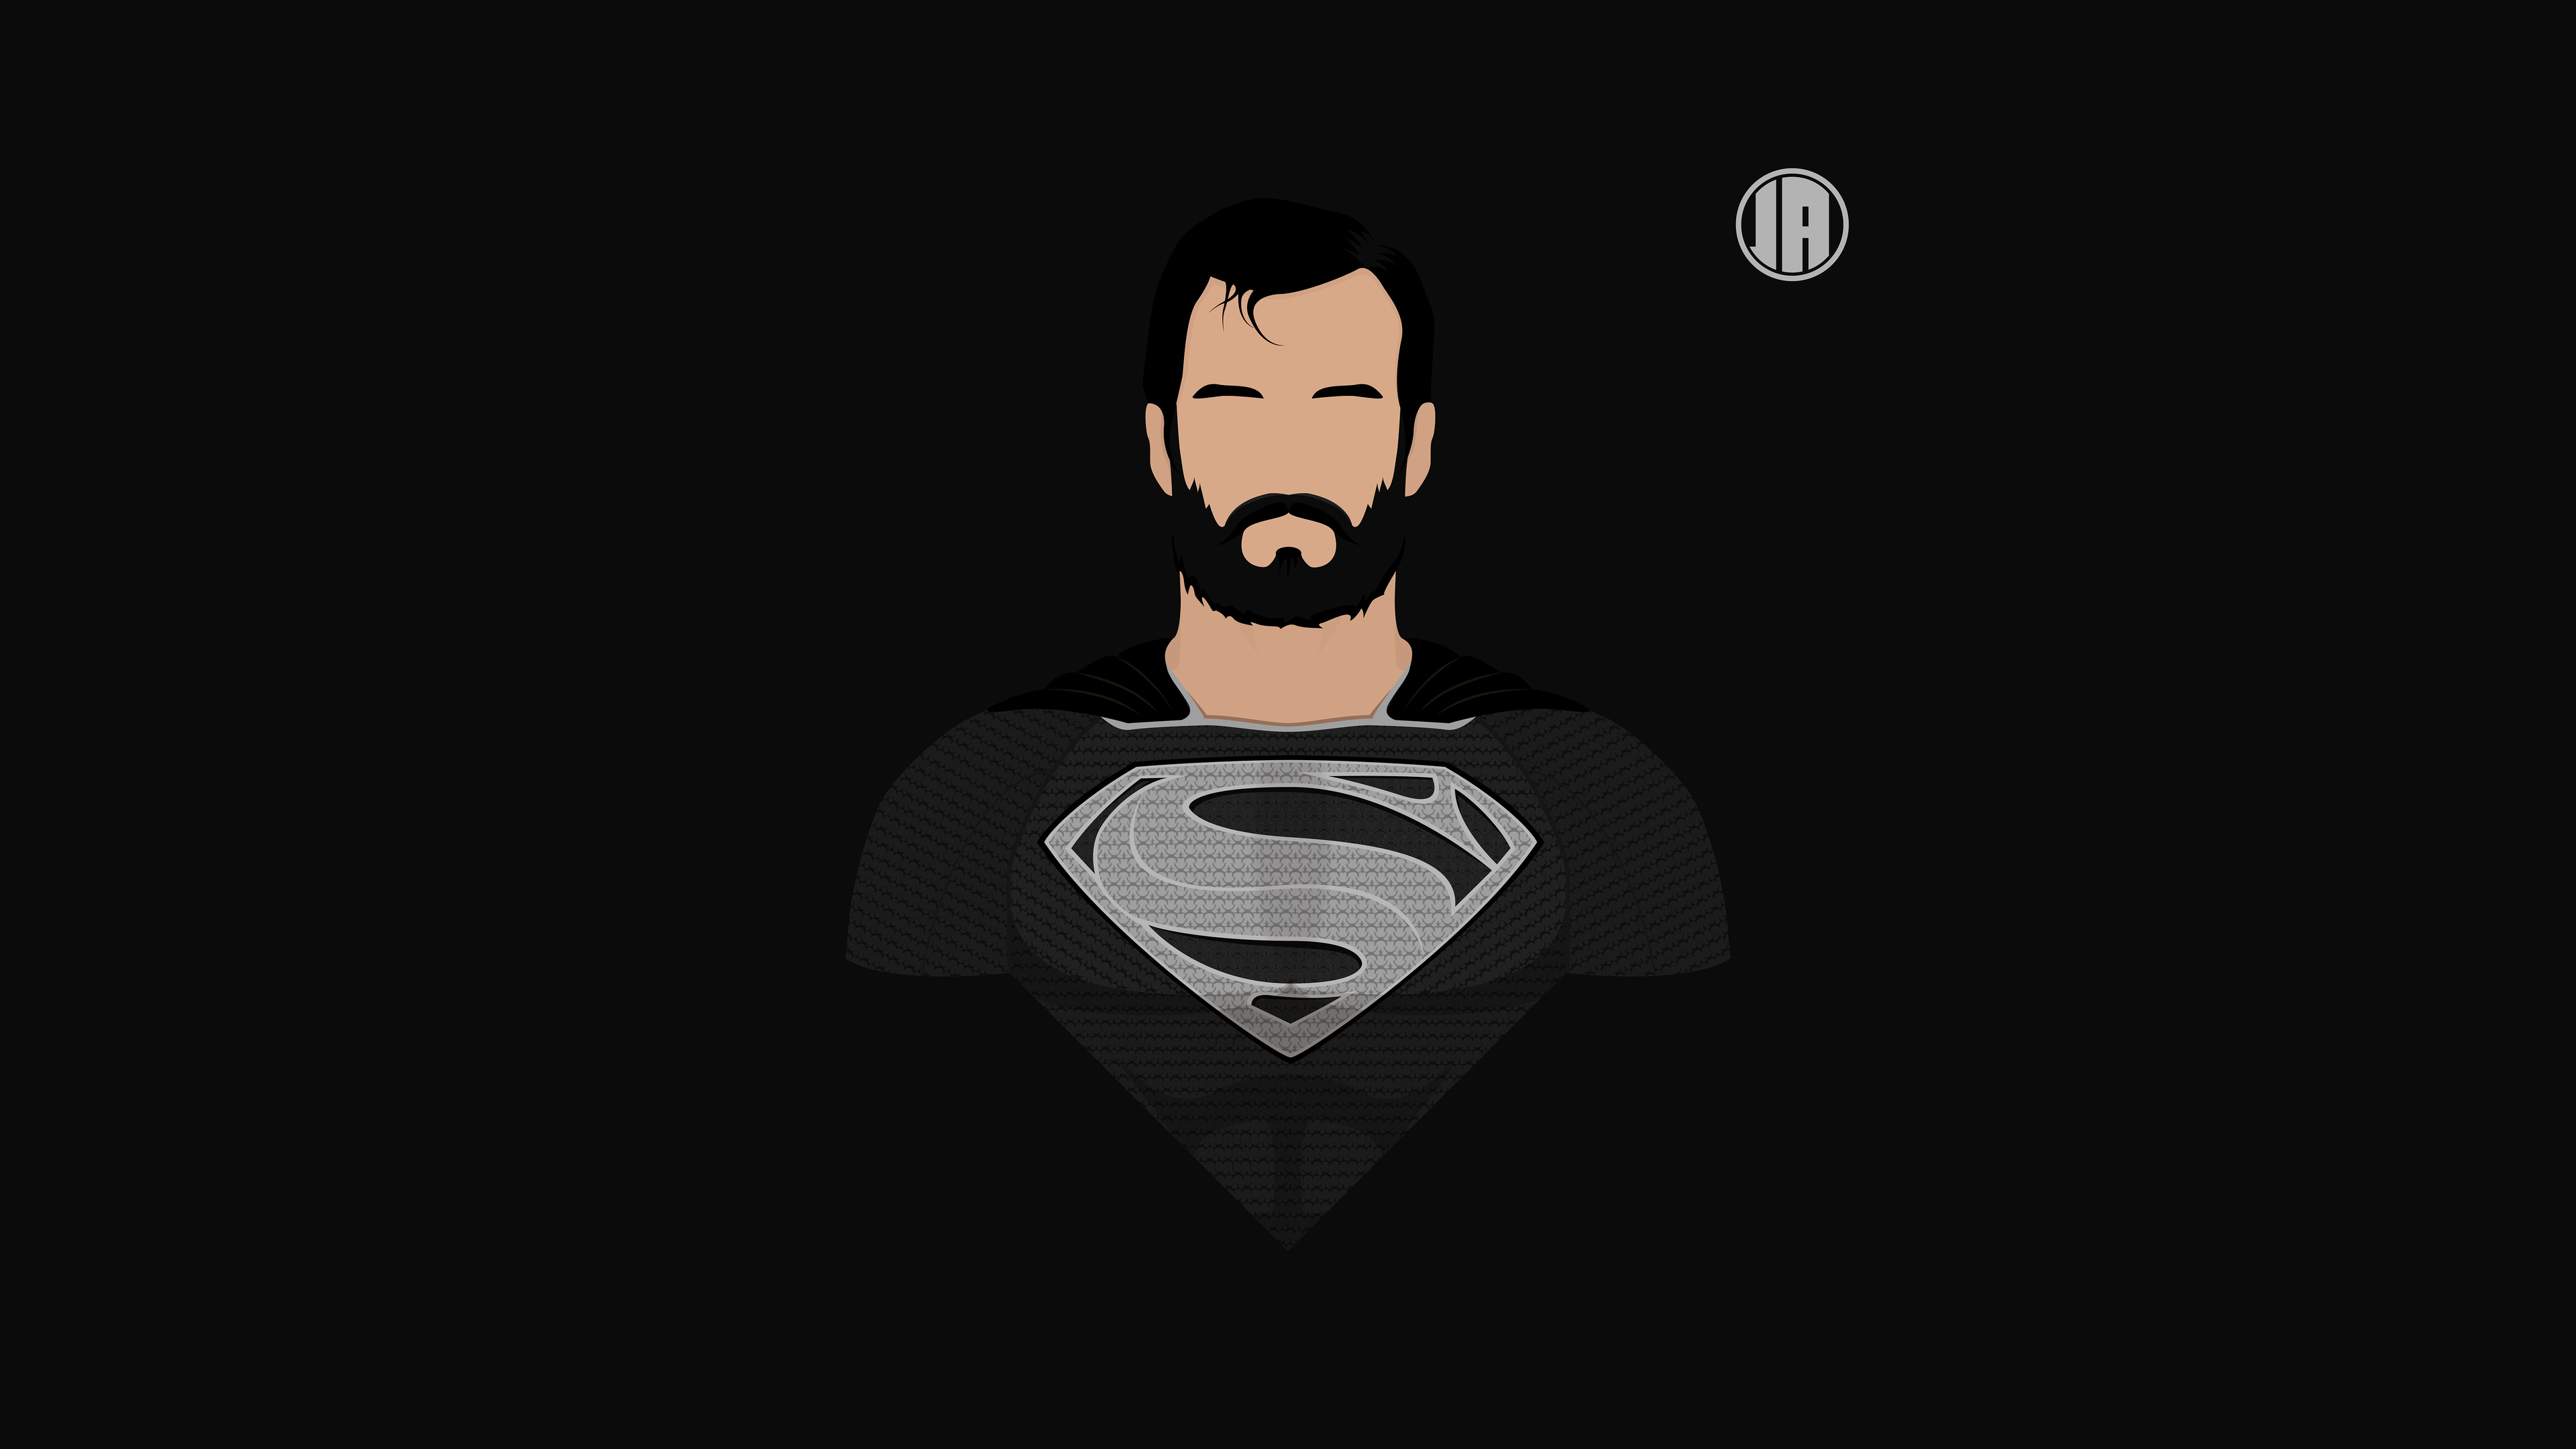 superman dceu minimalism 8k 1536518816 - Superman Dceu Minimalism 8k - superman wallpapers, superheroes wallpapers, minimalism wallpapers, hd-wallpapers, deviantart wallpapers, 8k wallpapers, 5k wallpapers, 4k-wallpapers